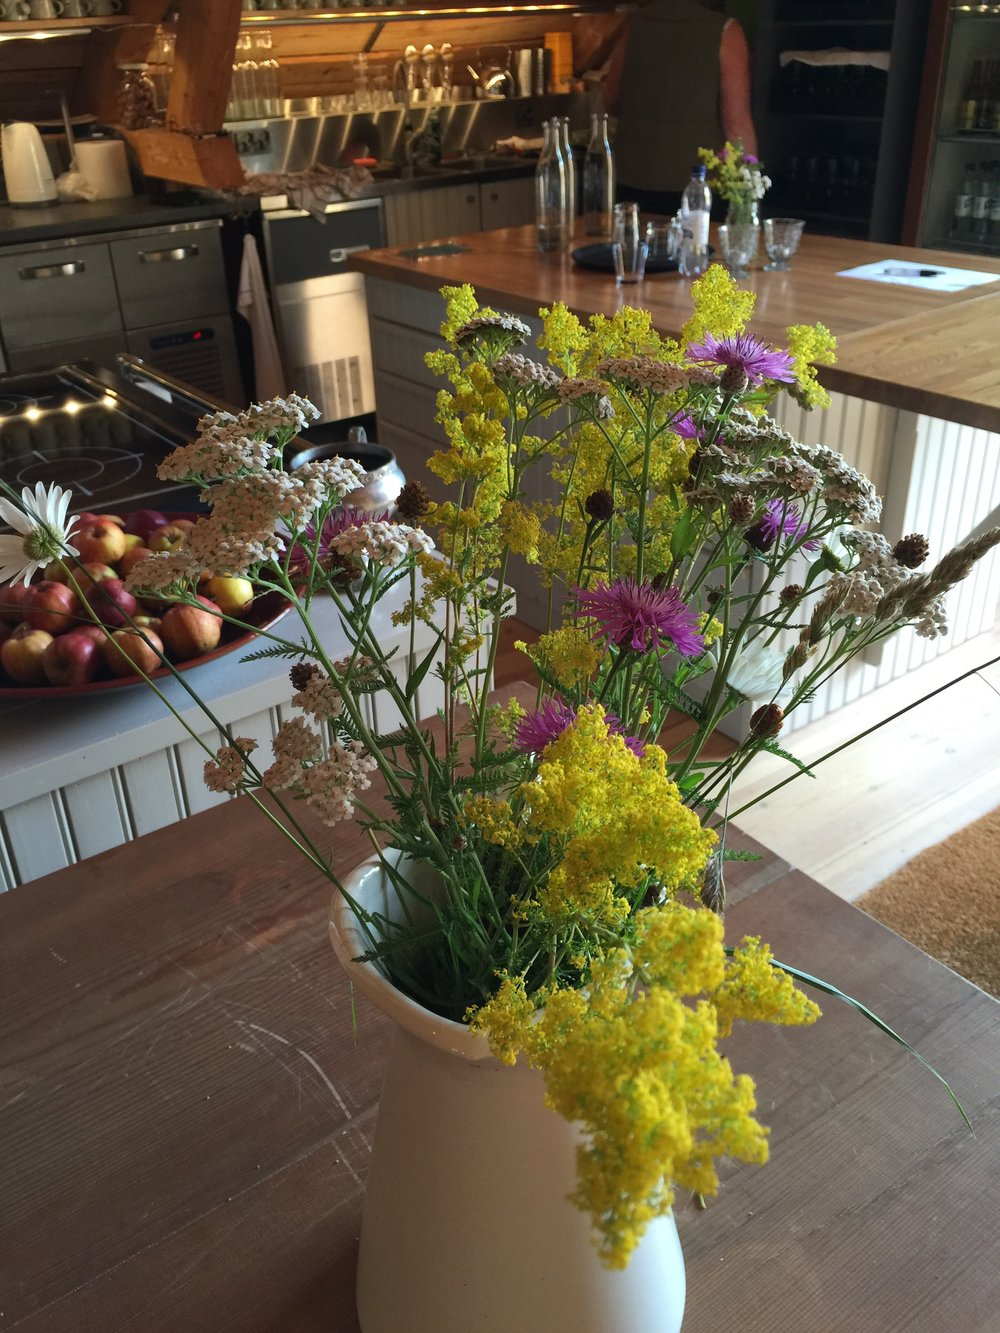 Aland flowers on table.jpg